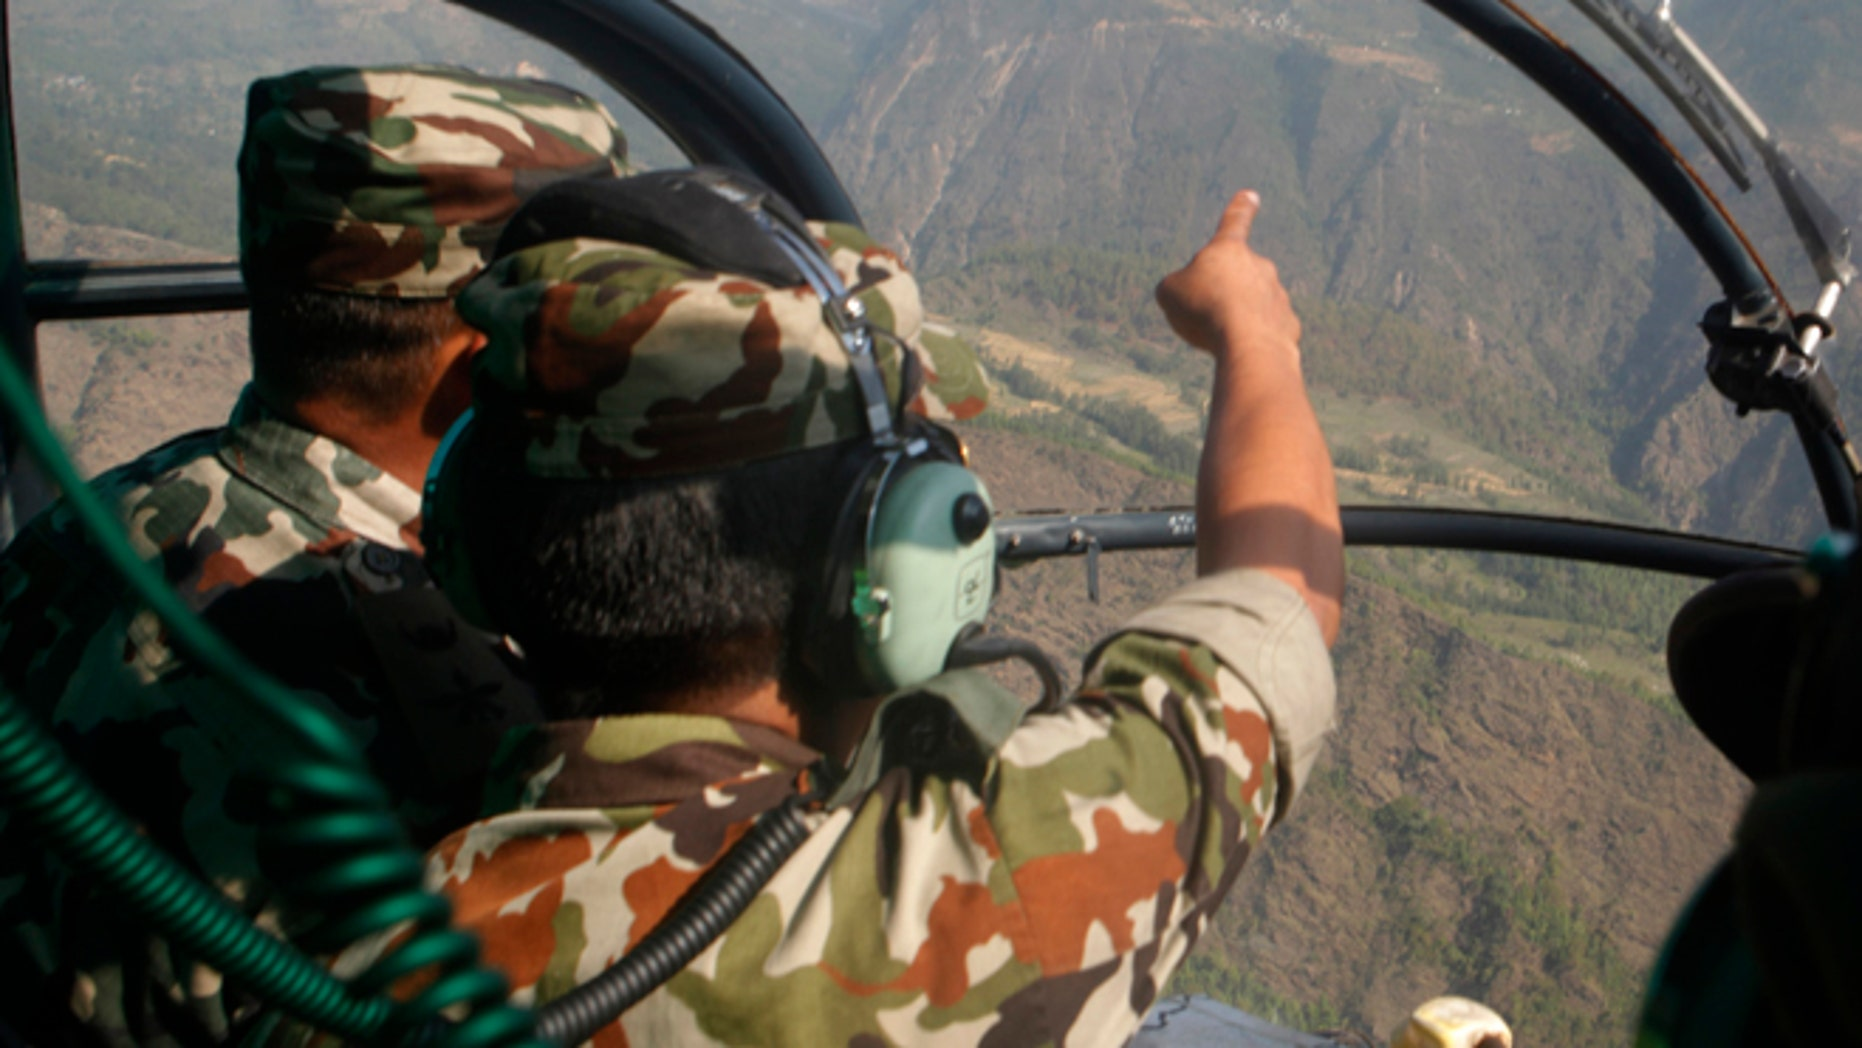 May 14, 2015: Nepalese army men search for the missing U.S. Marine helicopter in the earthquake affected Dolakha District, Nepal.